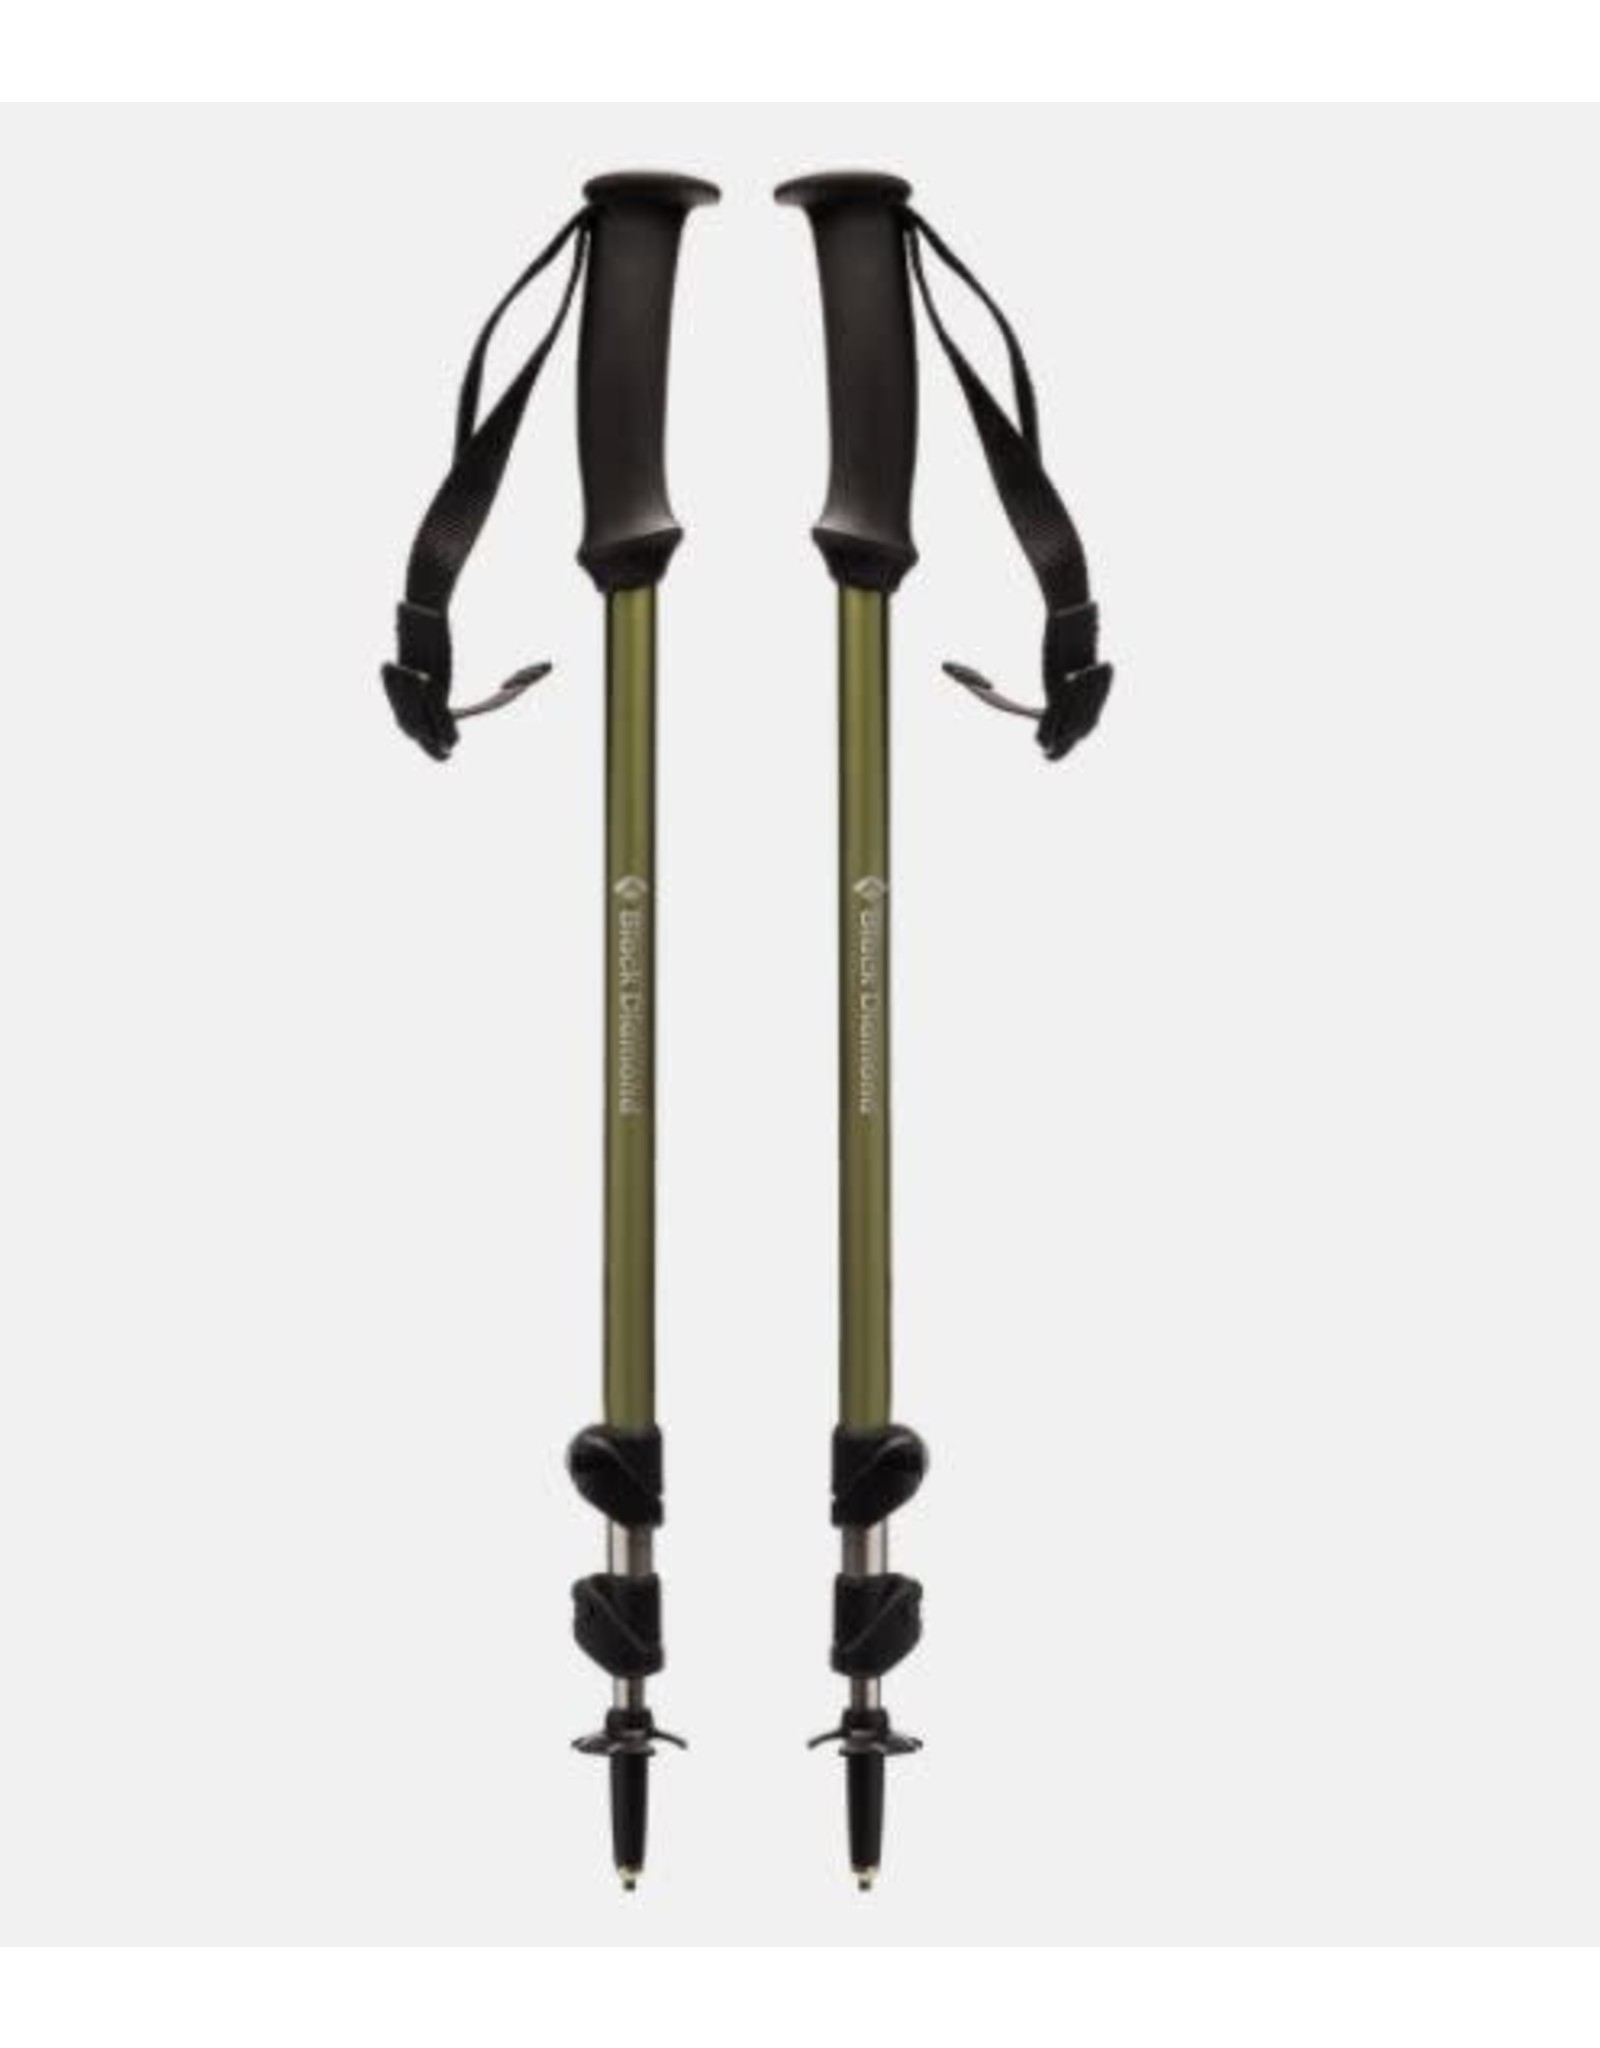 BLACK DIAMOND BLACK DIAMOND TRAIL EXPLORER 3 HIKING POLES